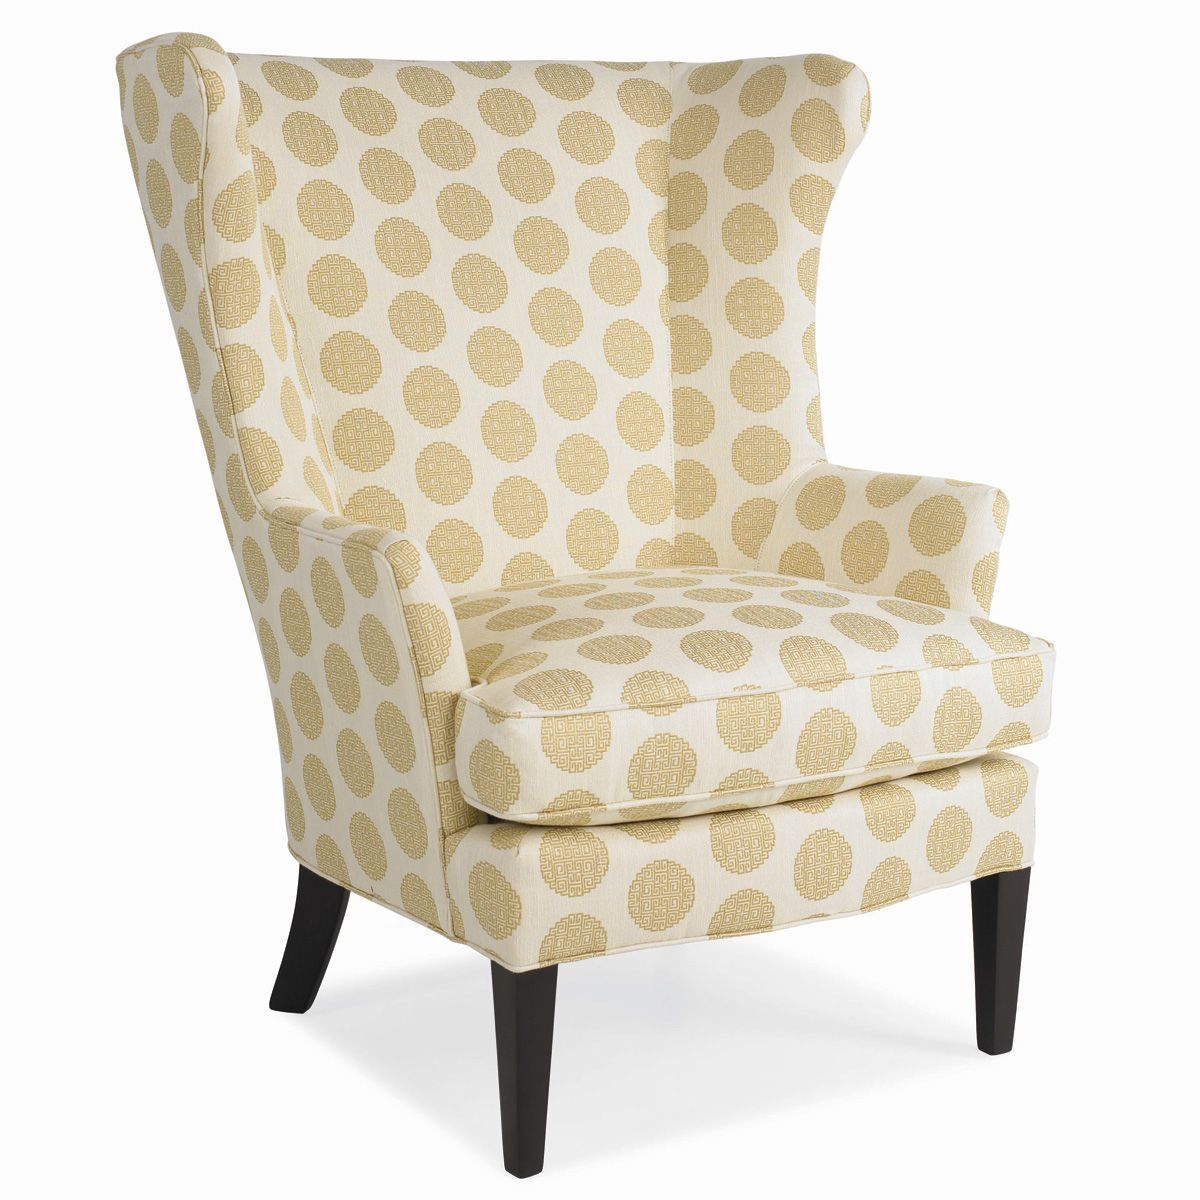 Accent Meuble Fauteuil Inclinable Chesapeake Upholstered Accent Chair Diy Furniture